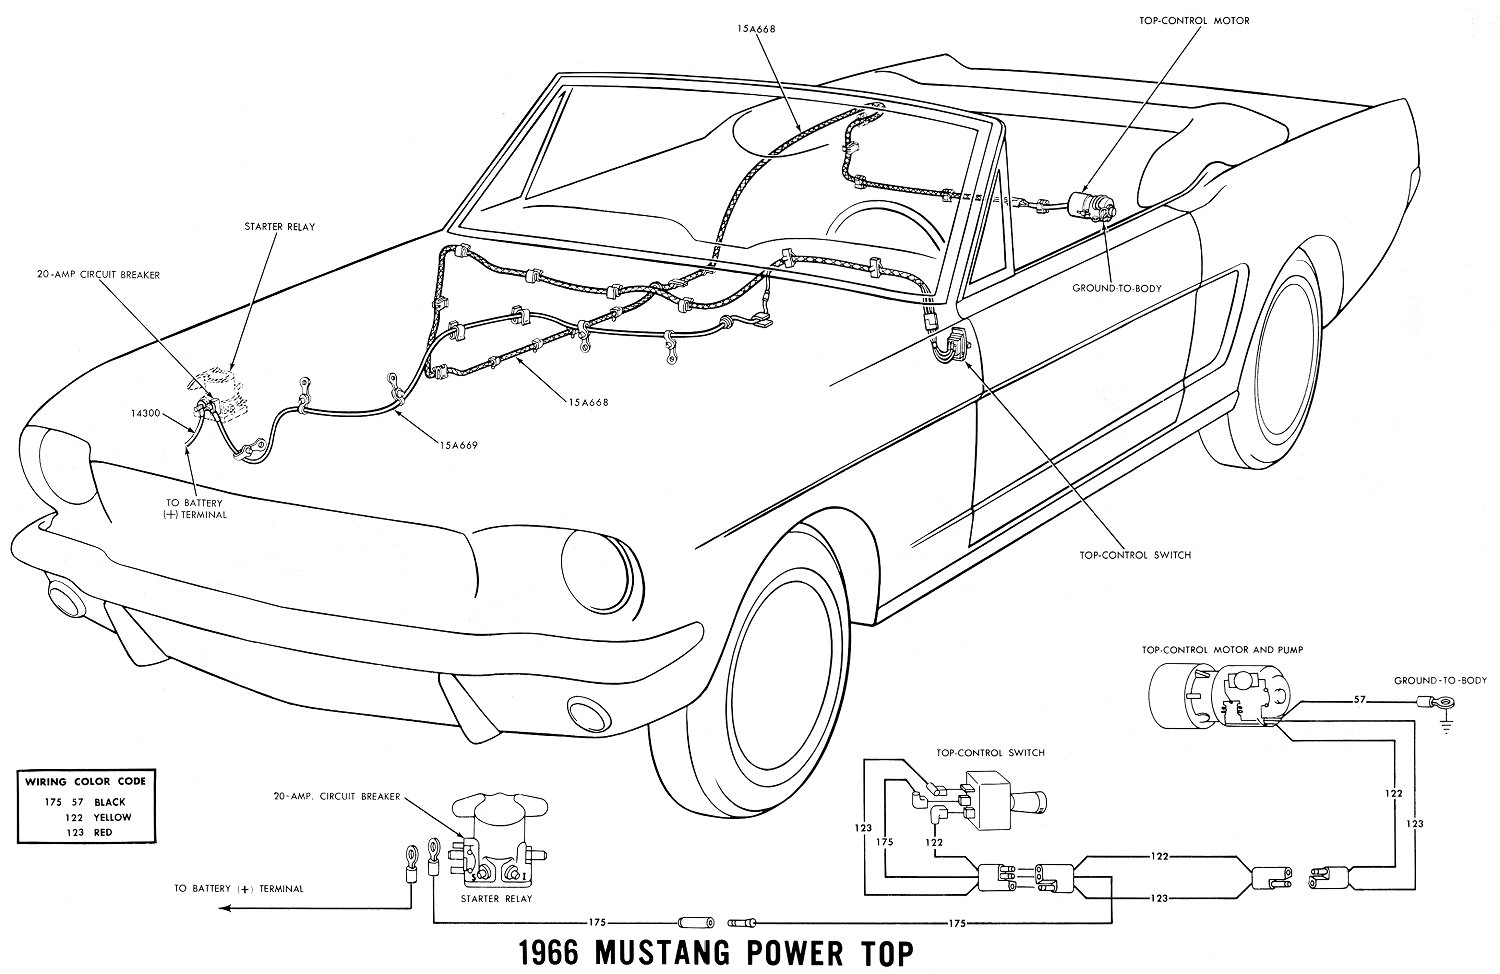 66pwrtop 1966 mustang wiring diagrams average joe restoration